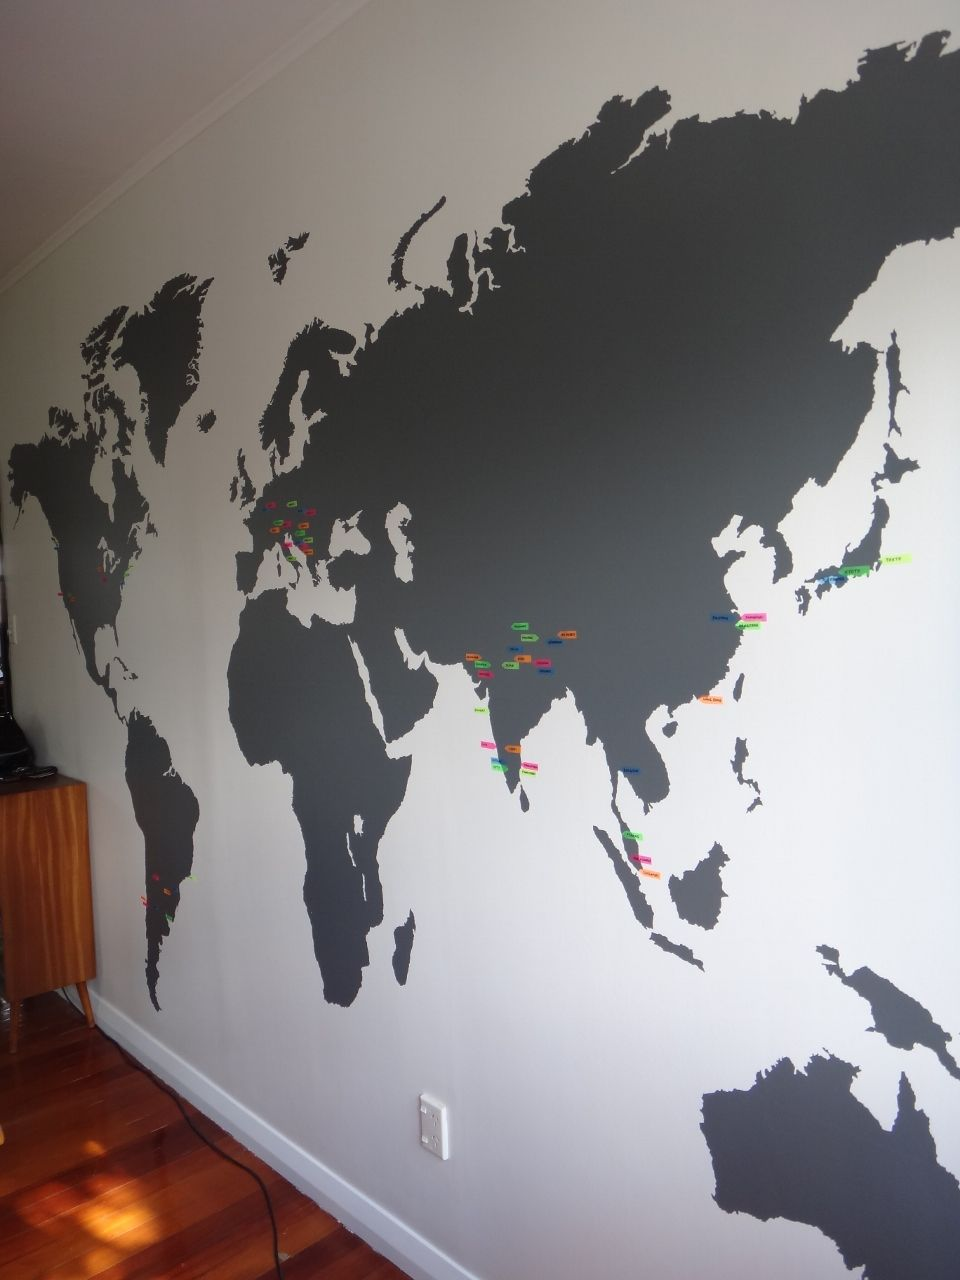 World map sticker for wall india - Extra Large World Map Vinyl Wall Sticker